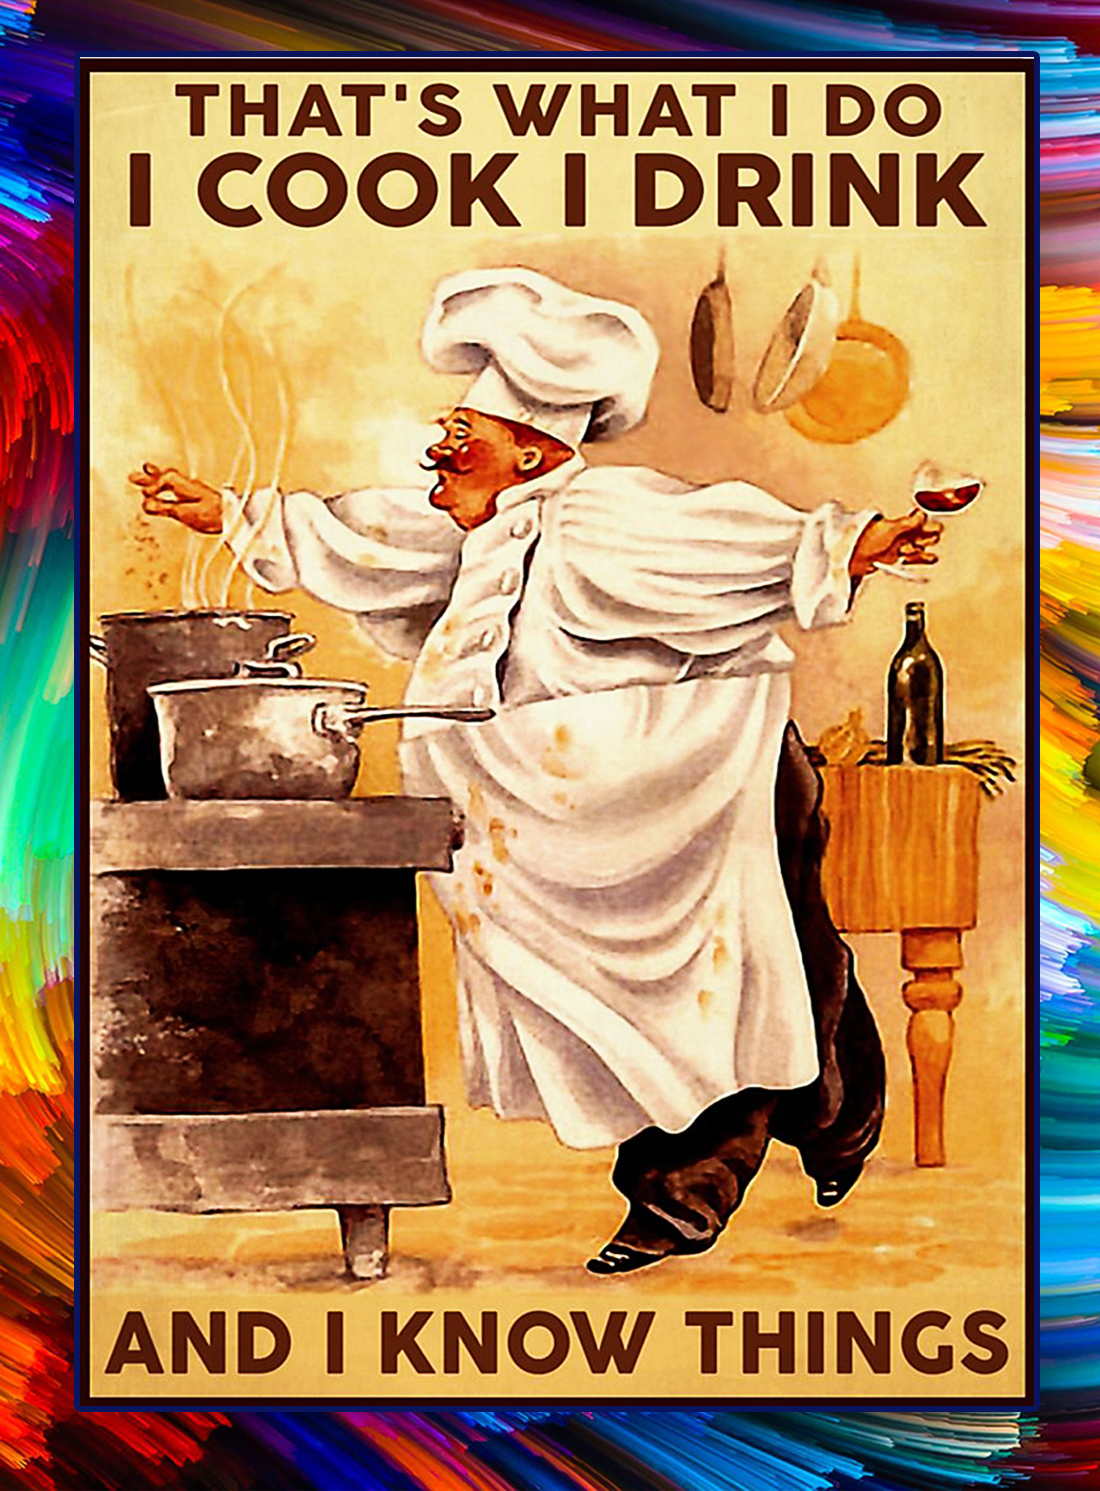 Chef that's what i do i cook i drink and i know things poster - A4